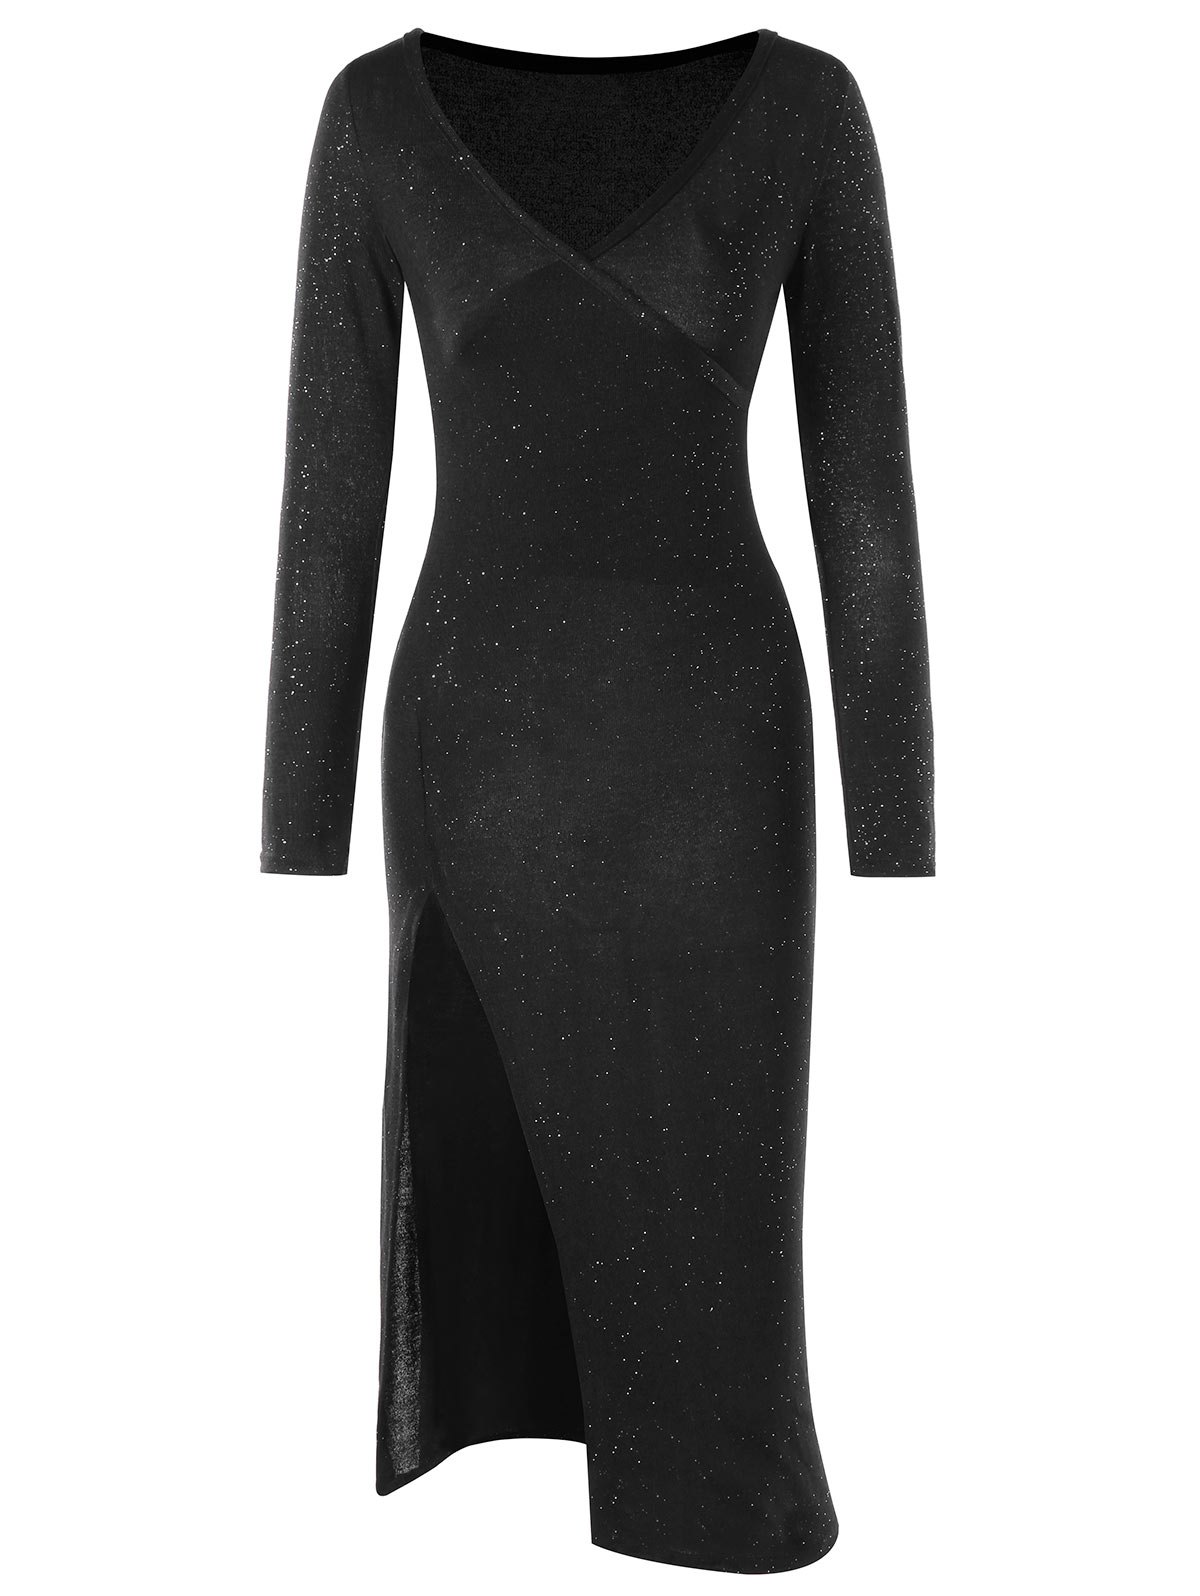 Long Sleeve High Slit Dress - BLACK S